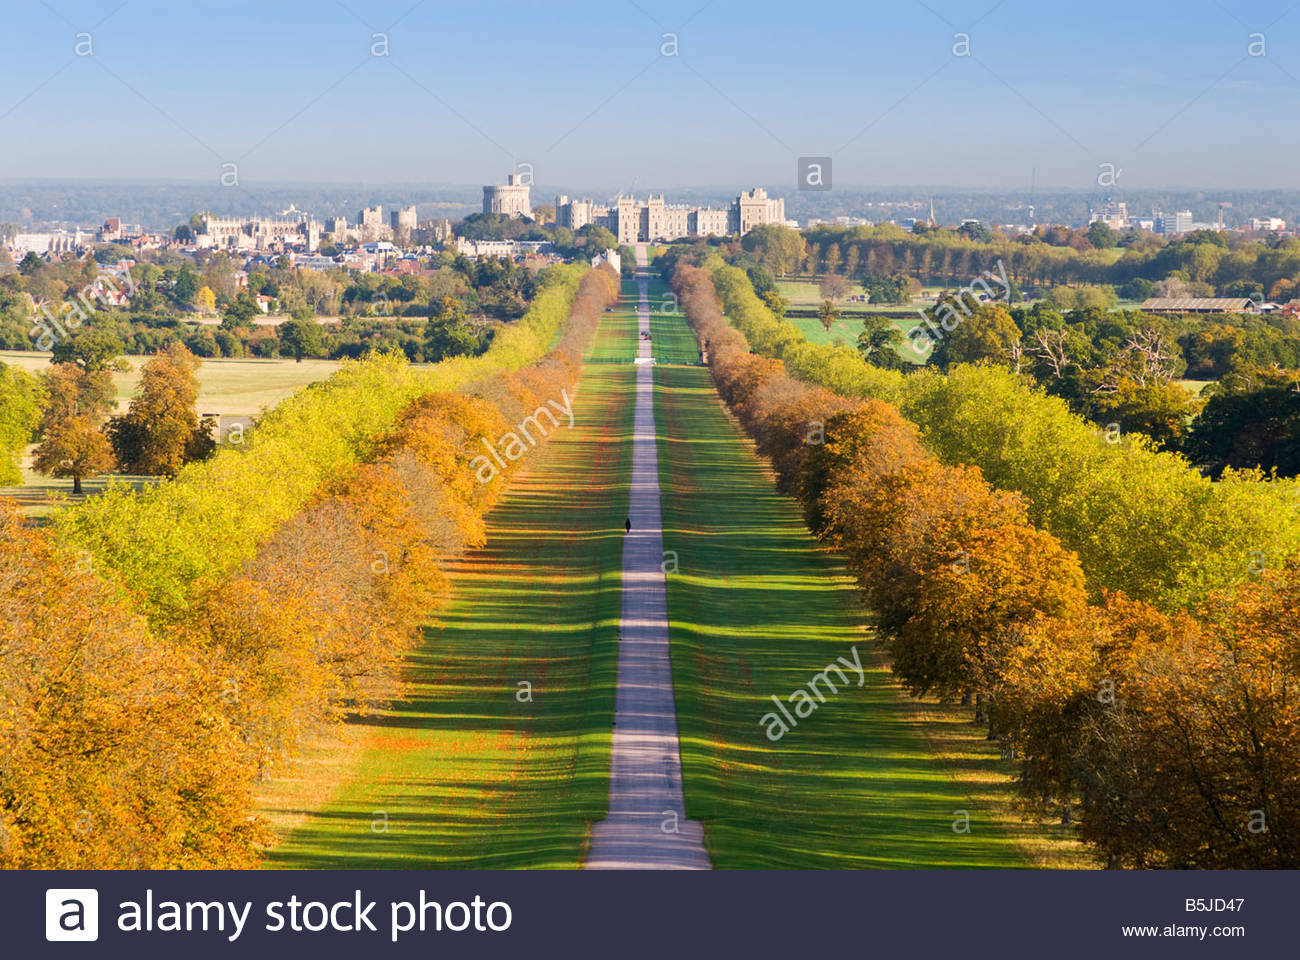 Autumn view of The Long Walk, at Windsor Castle, Berkshire. - Stock Image